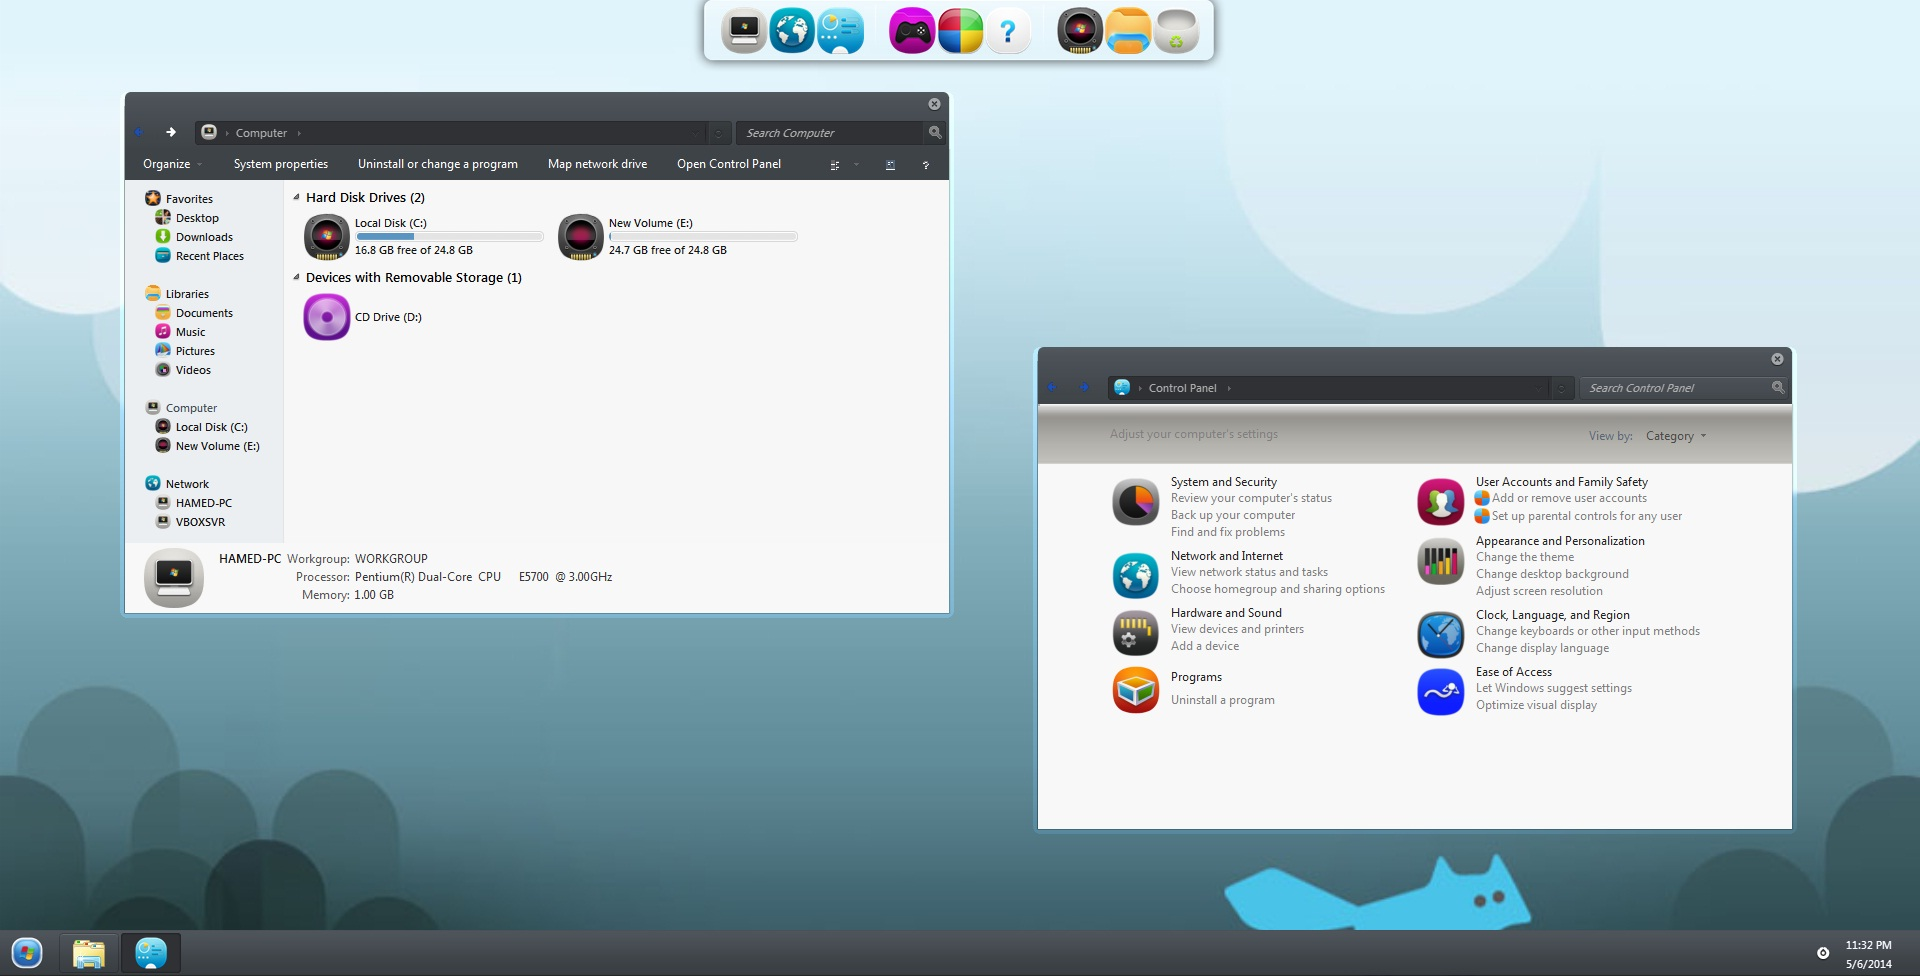 MeeGo Skin Pack 2.0 for Win7/8/8.1 Released